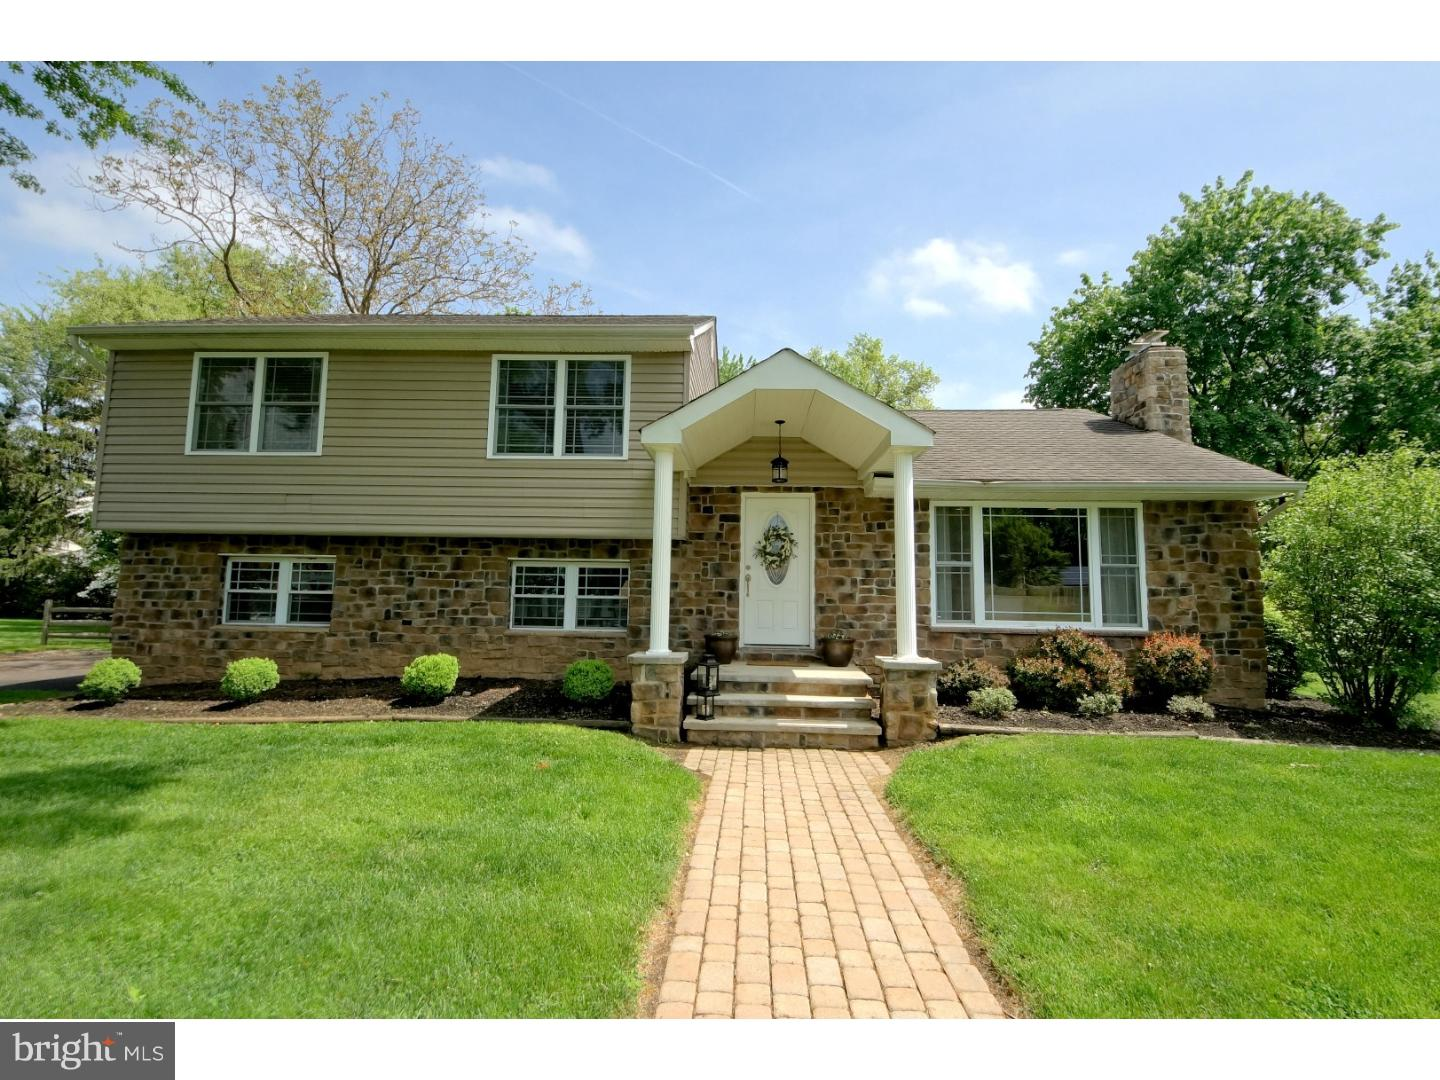 Single Family Home for Sale at 7 MANSFIELD Ewing, New Jersey 08628 United StatesMunicipality: Ewing Township